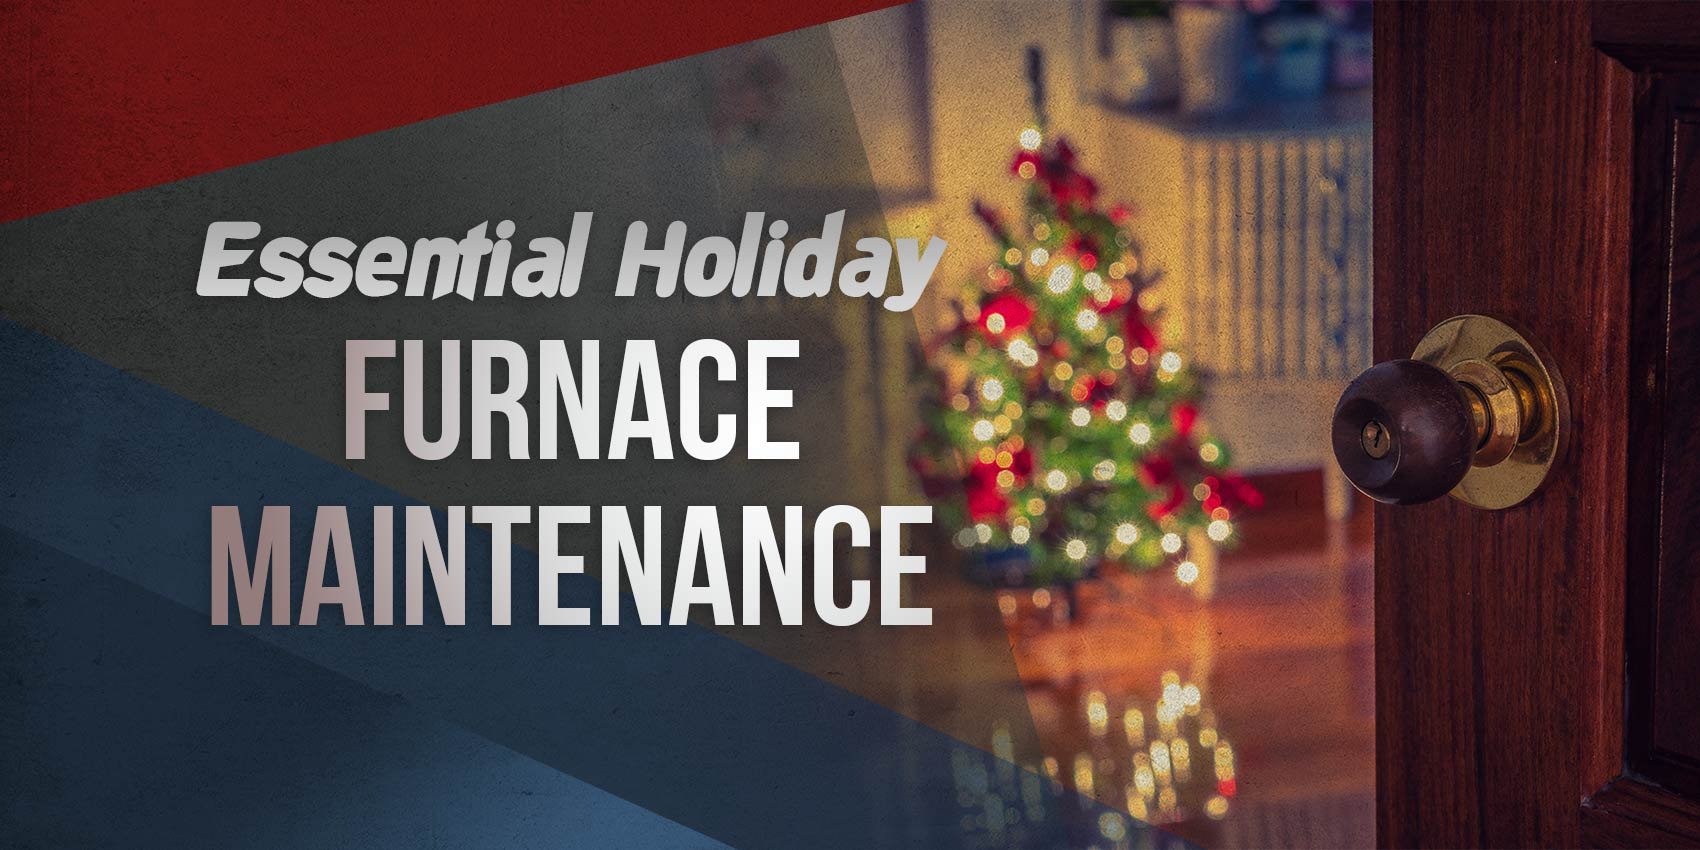 Essential Holiday Furnace